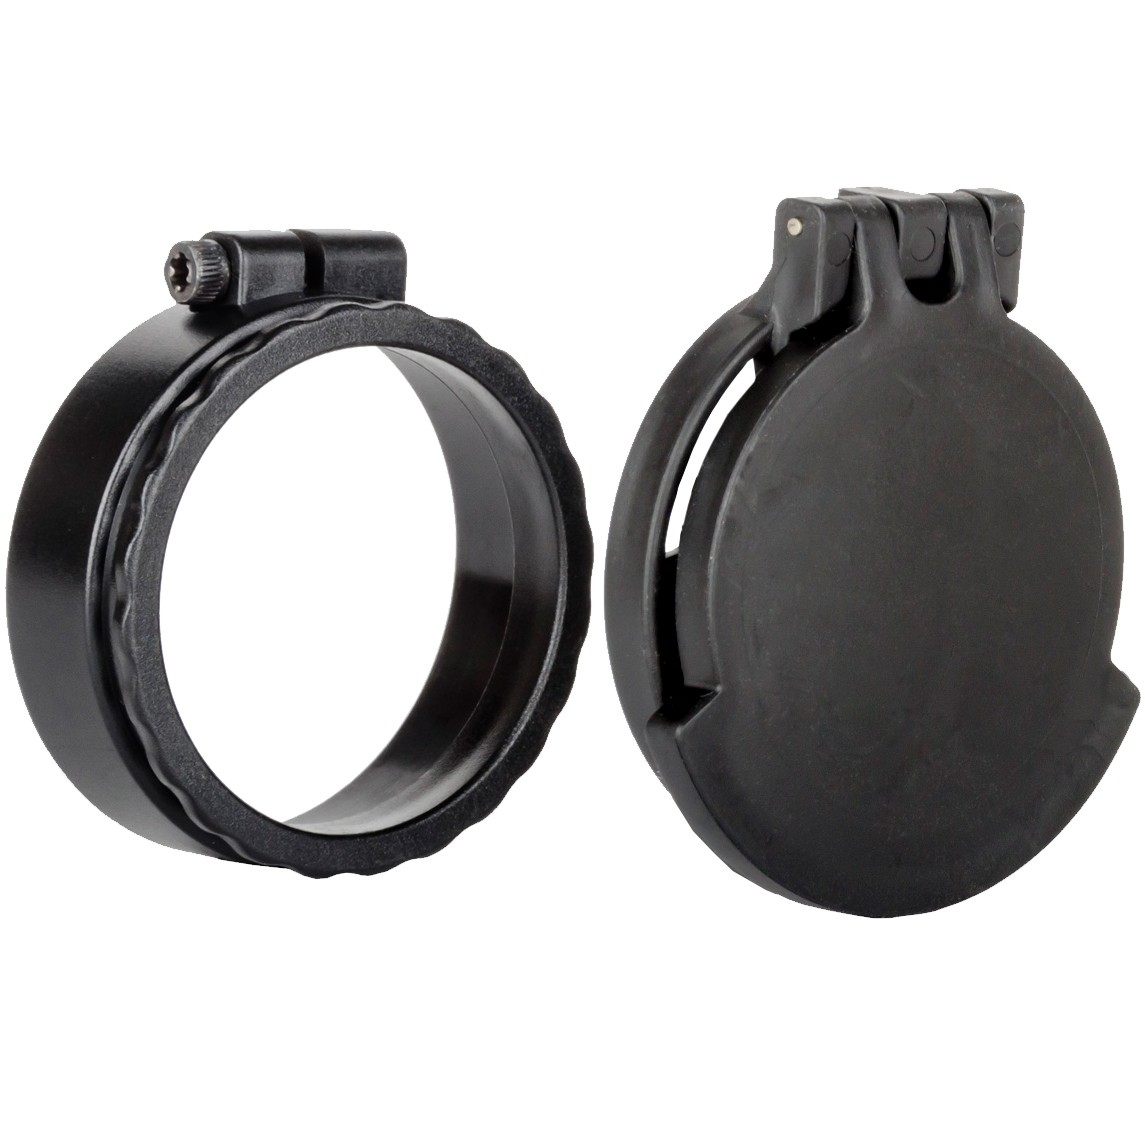 Tenebraex Flip Ocular Cover with Adapter Ring